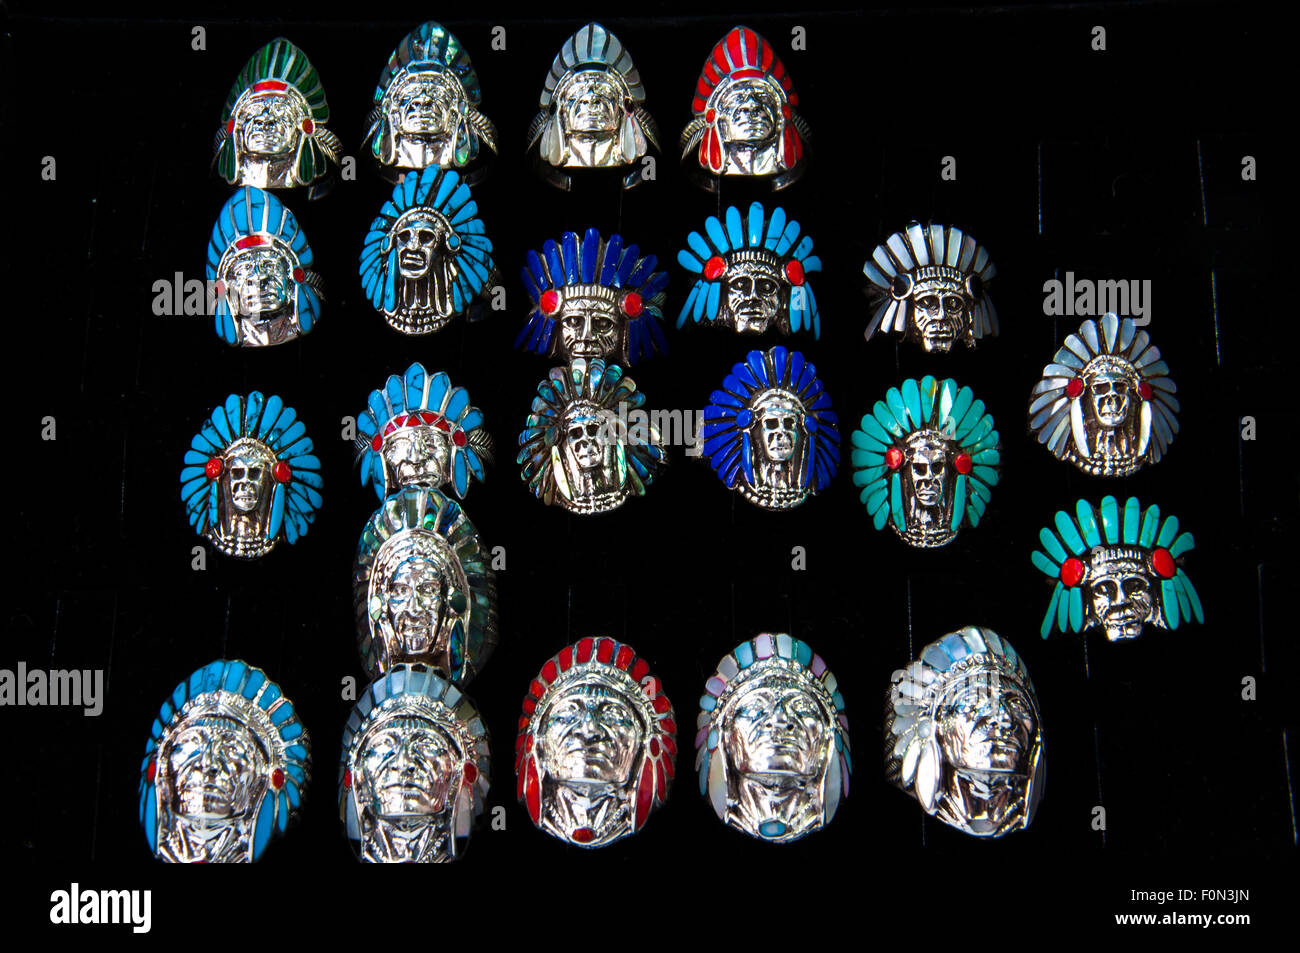 Indian Chief shaped silver rings arranged side by side - Stock Image